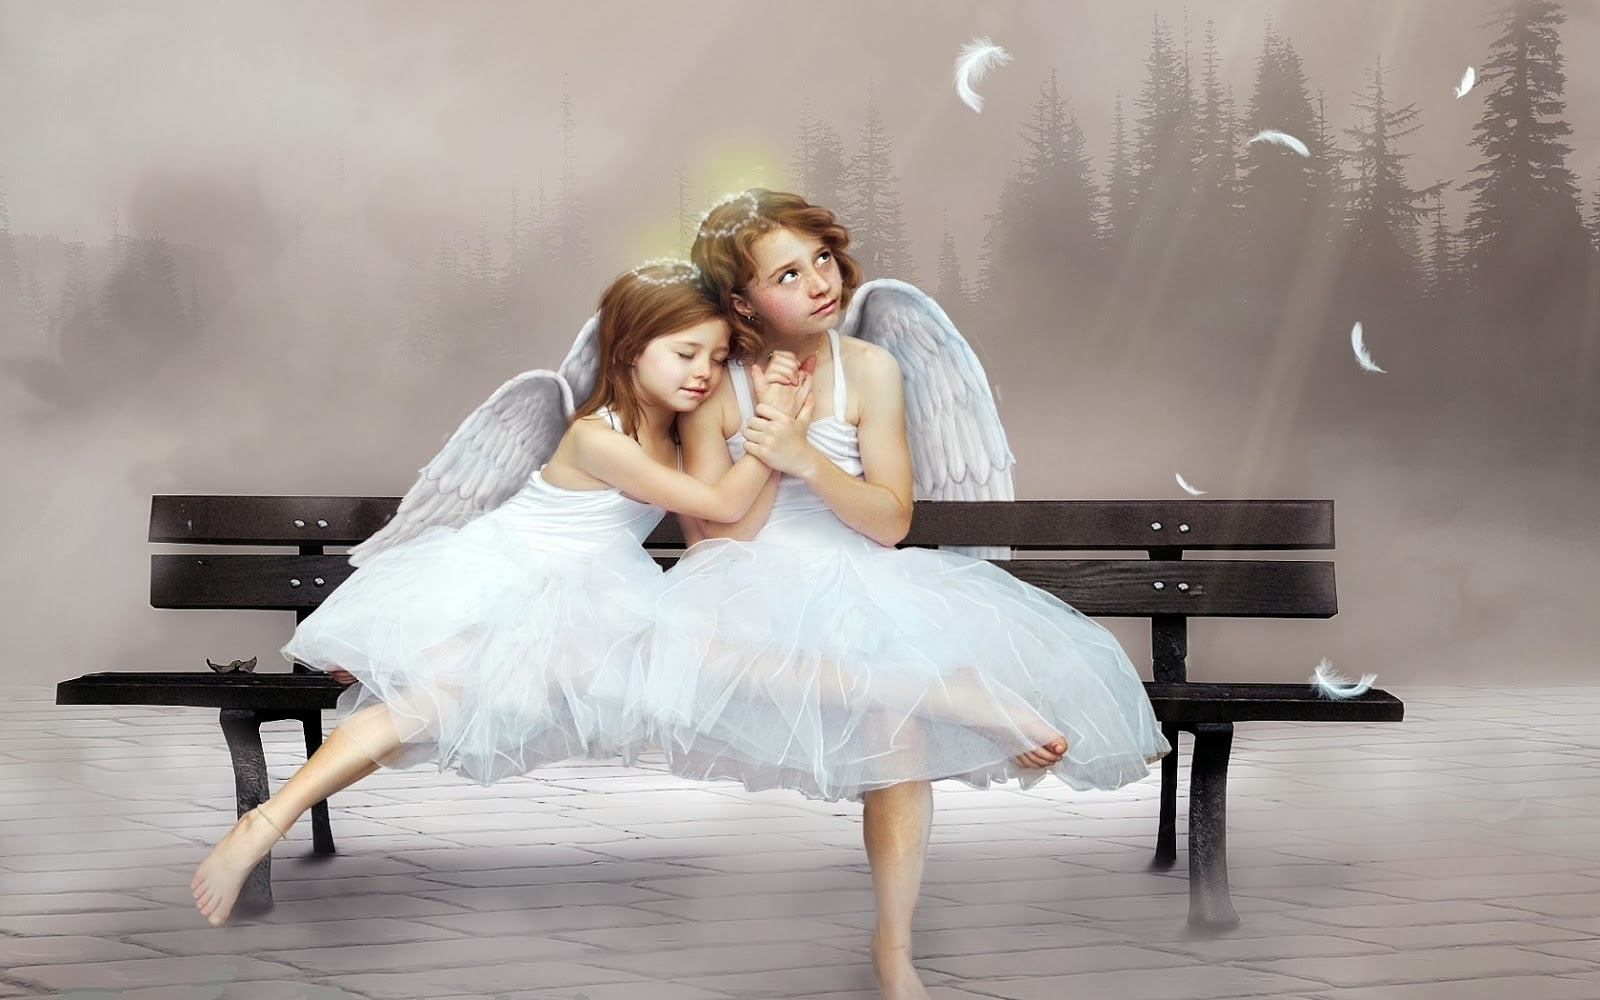 Cute Baby Computer Wallpaper Angels Wallpapers Most Beautiful Places In The World